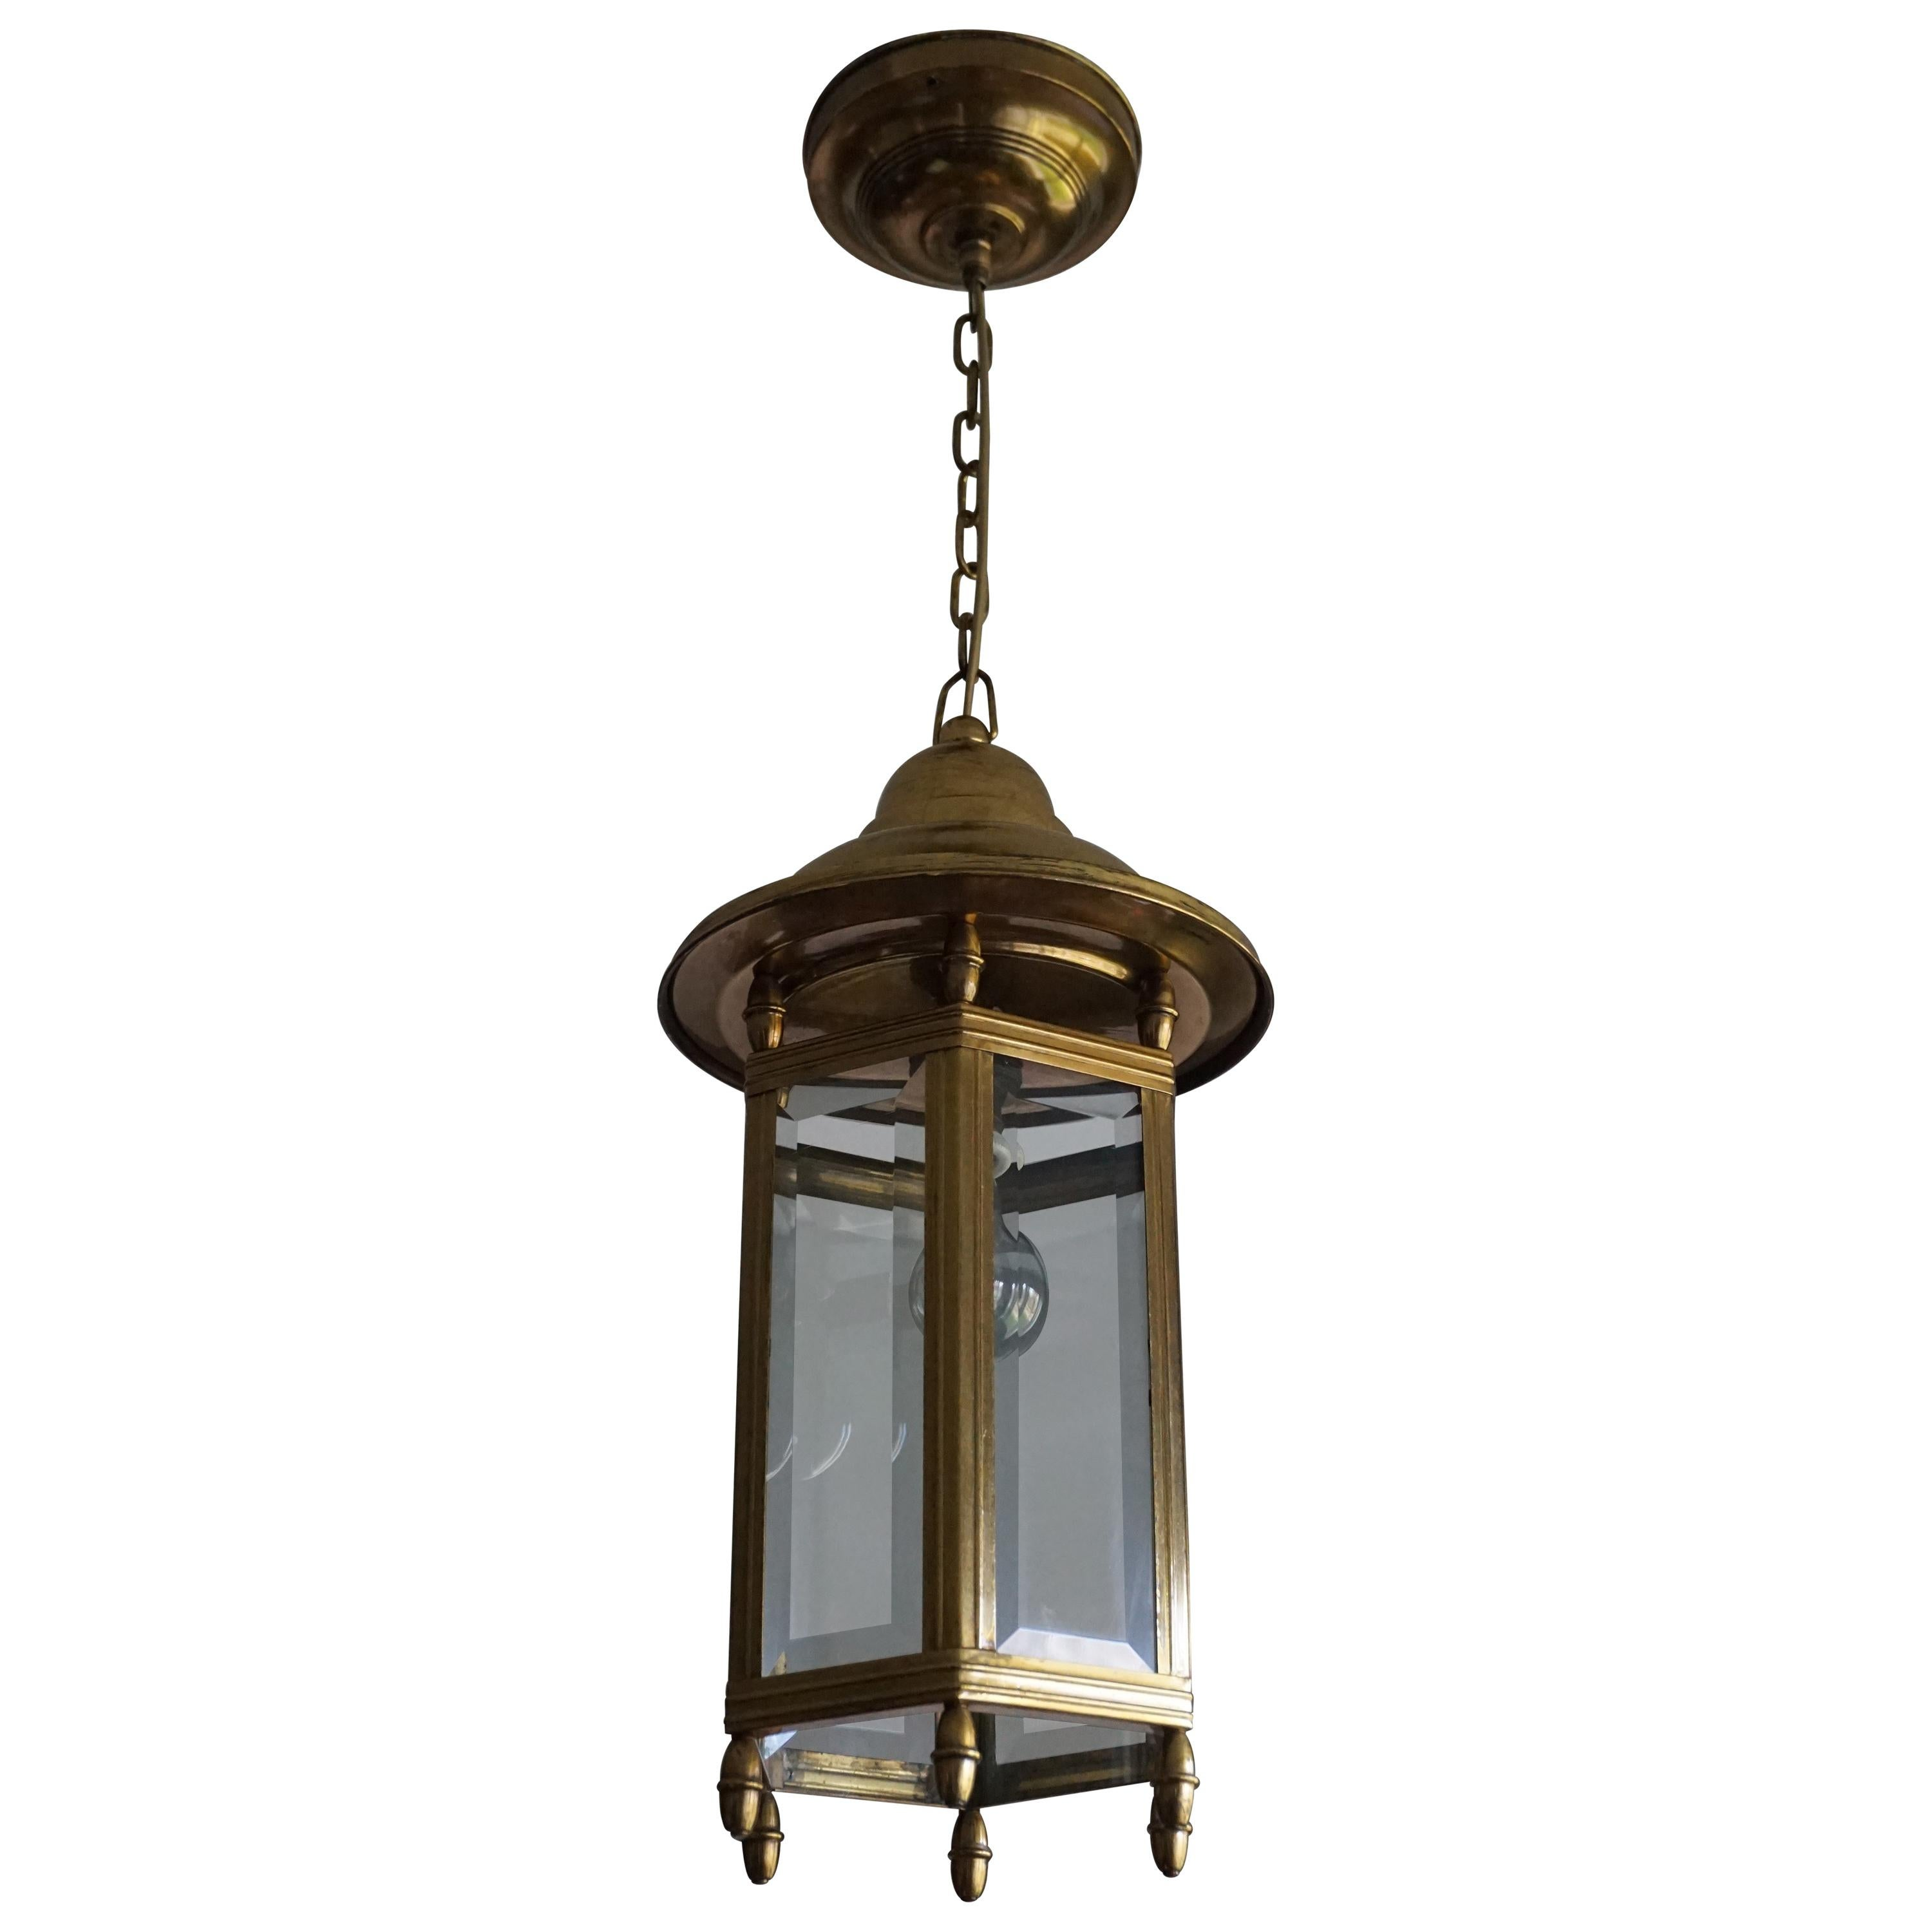 Antique Arts & Crafts Brass and Beveled Glass Entry Hall Pendant / Light Fixture